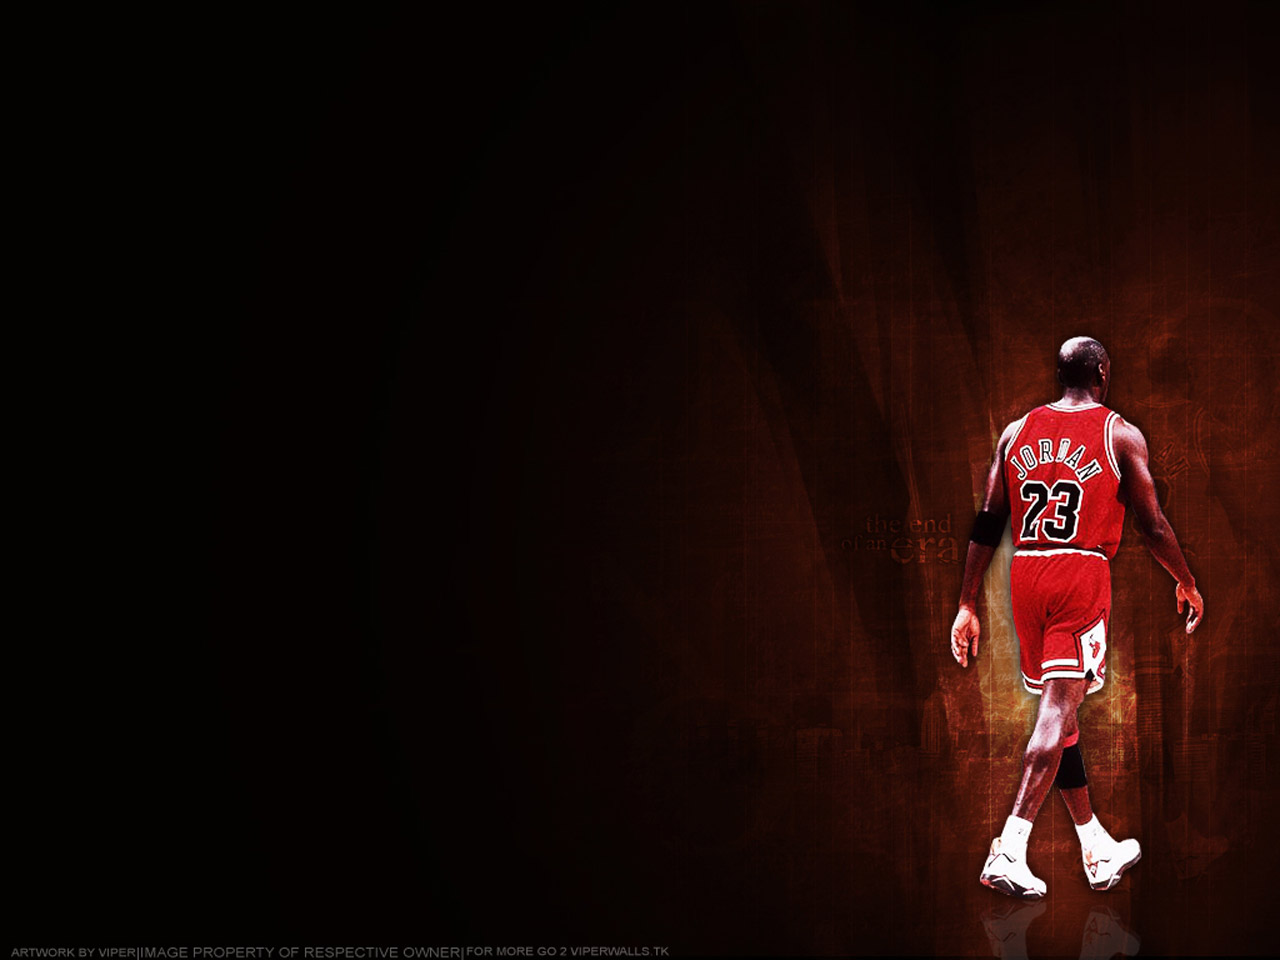 MICHAEL JORDAN - Basketball Wallpapers